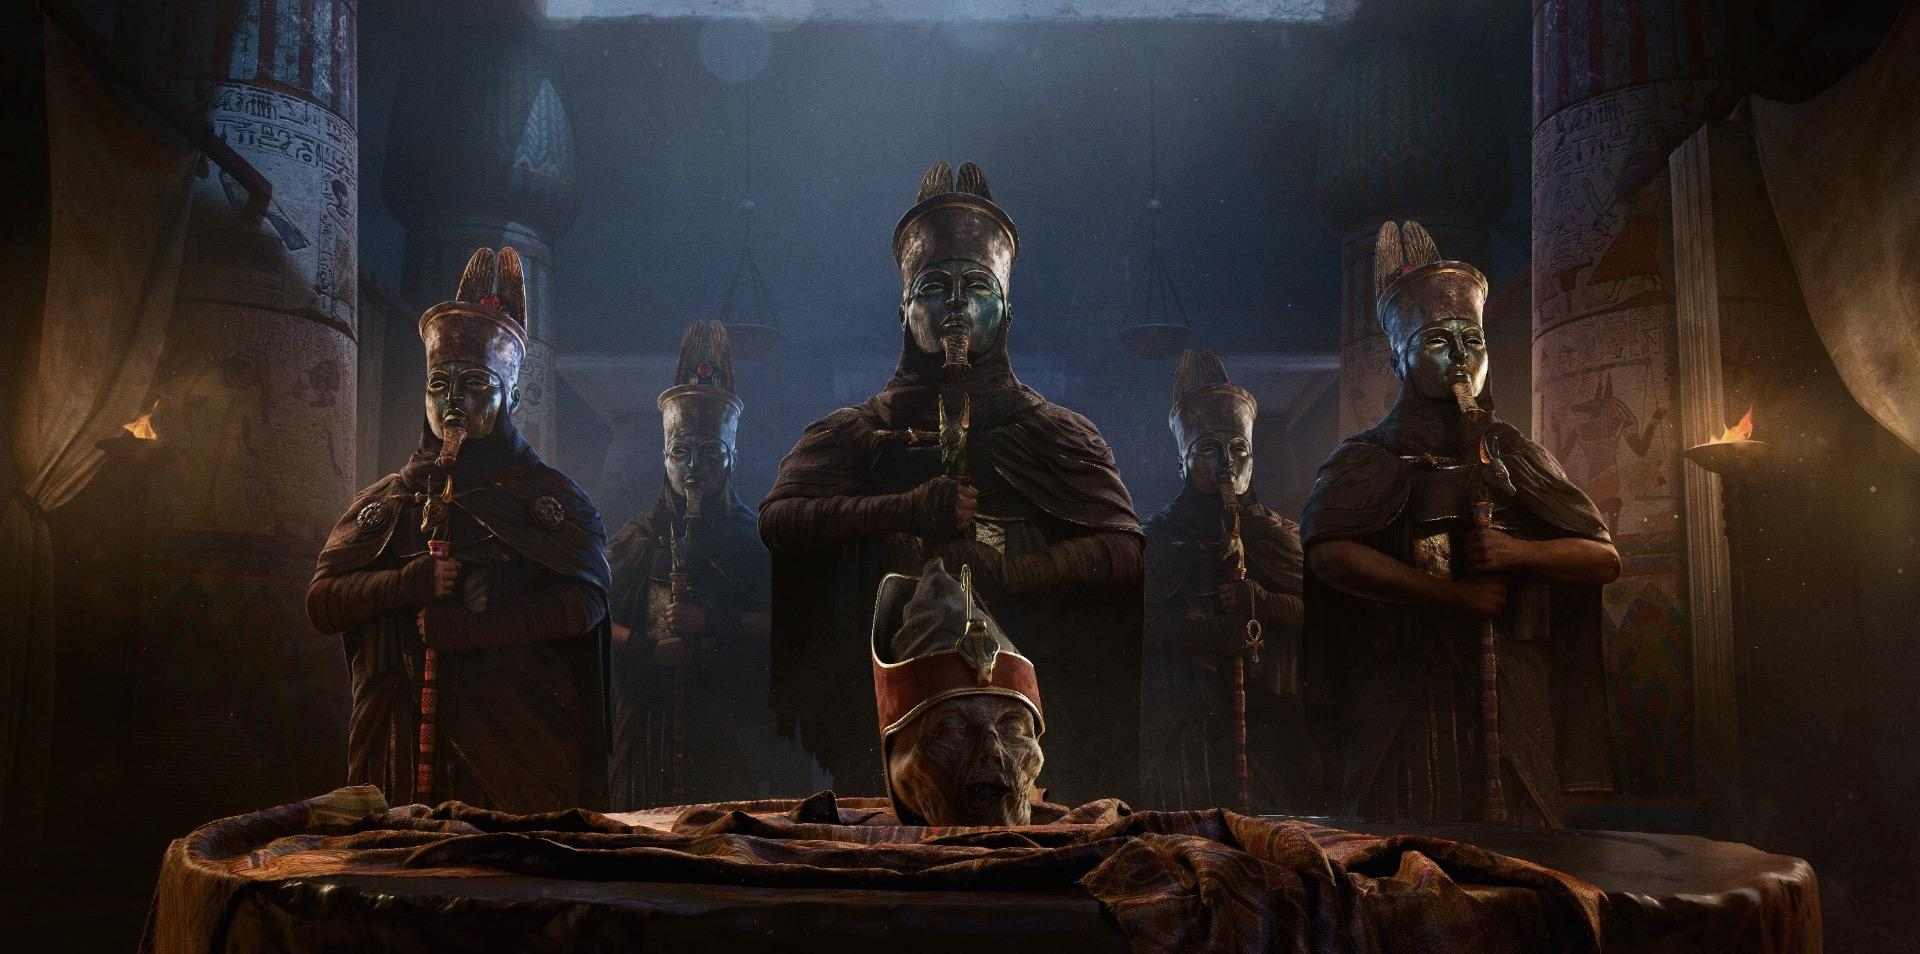 New Assassin's Creed Origins Trailer Spotlights The Order Of The Ancients